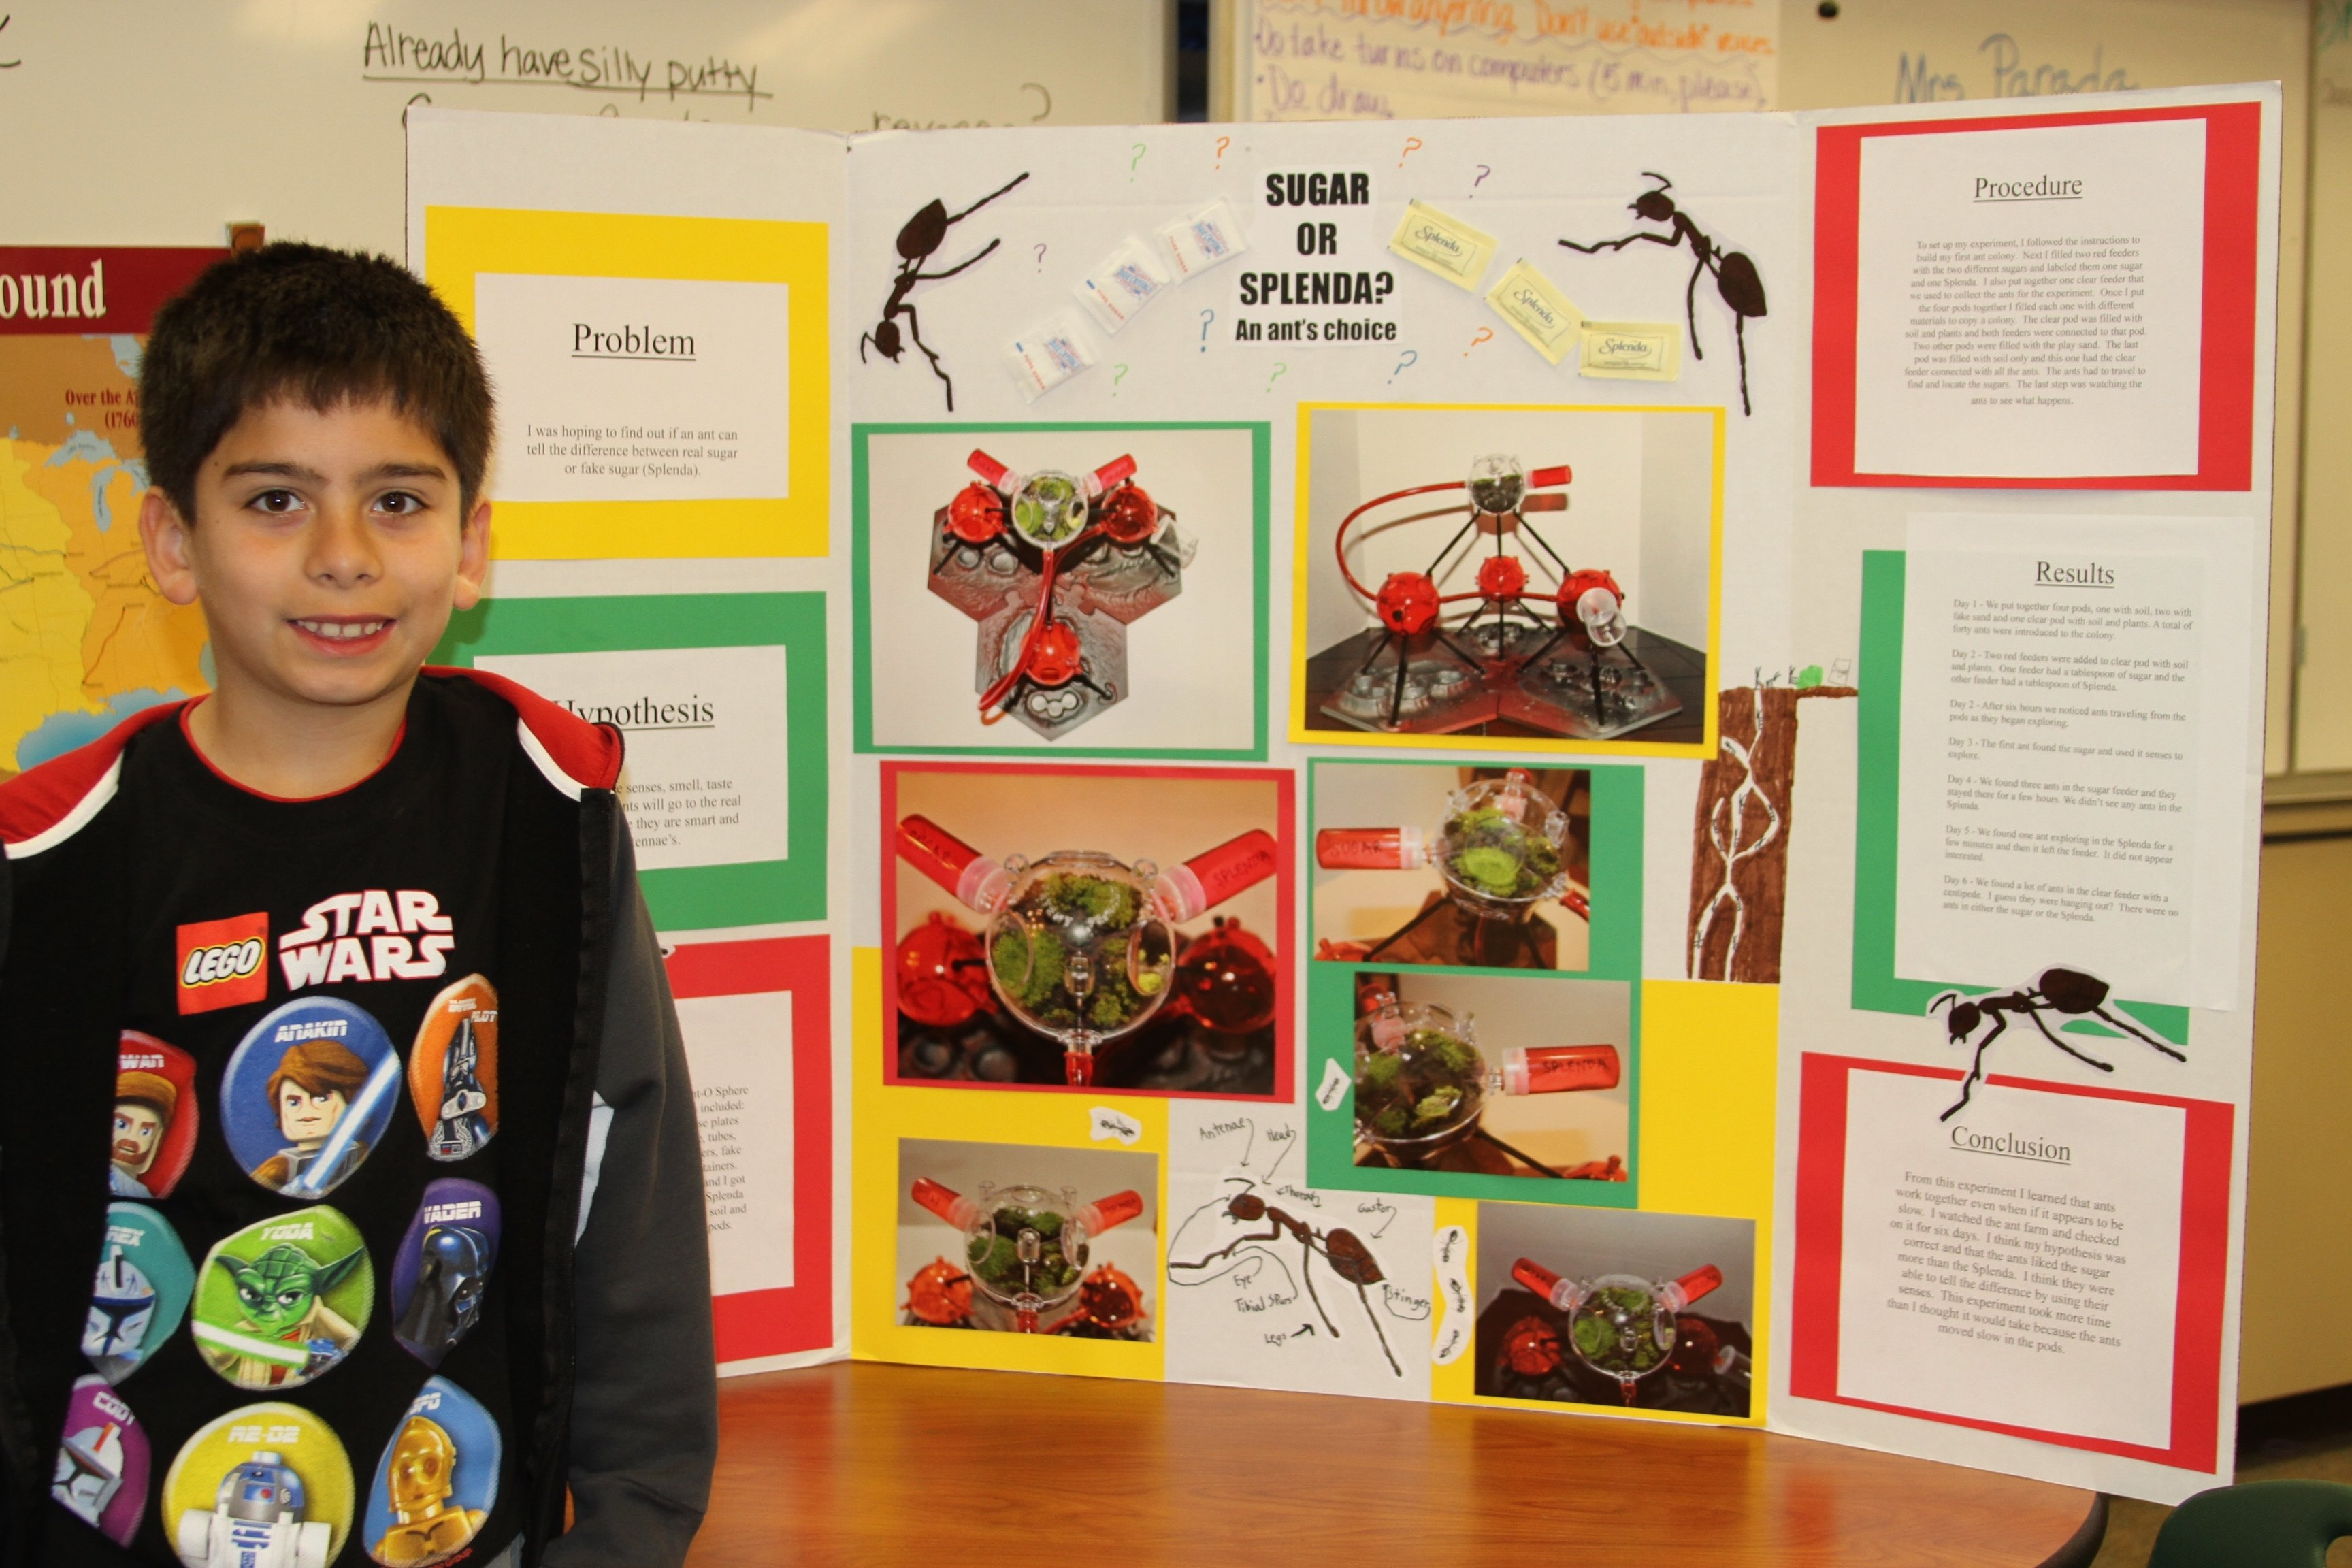 10 Nice Third Grade Science Fair Project Ideas green elementary school science fair inspires student scientists 23 2020